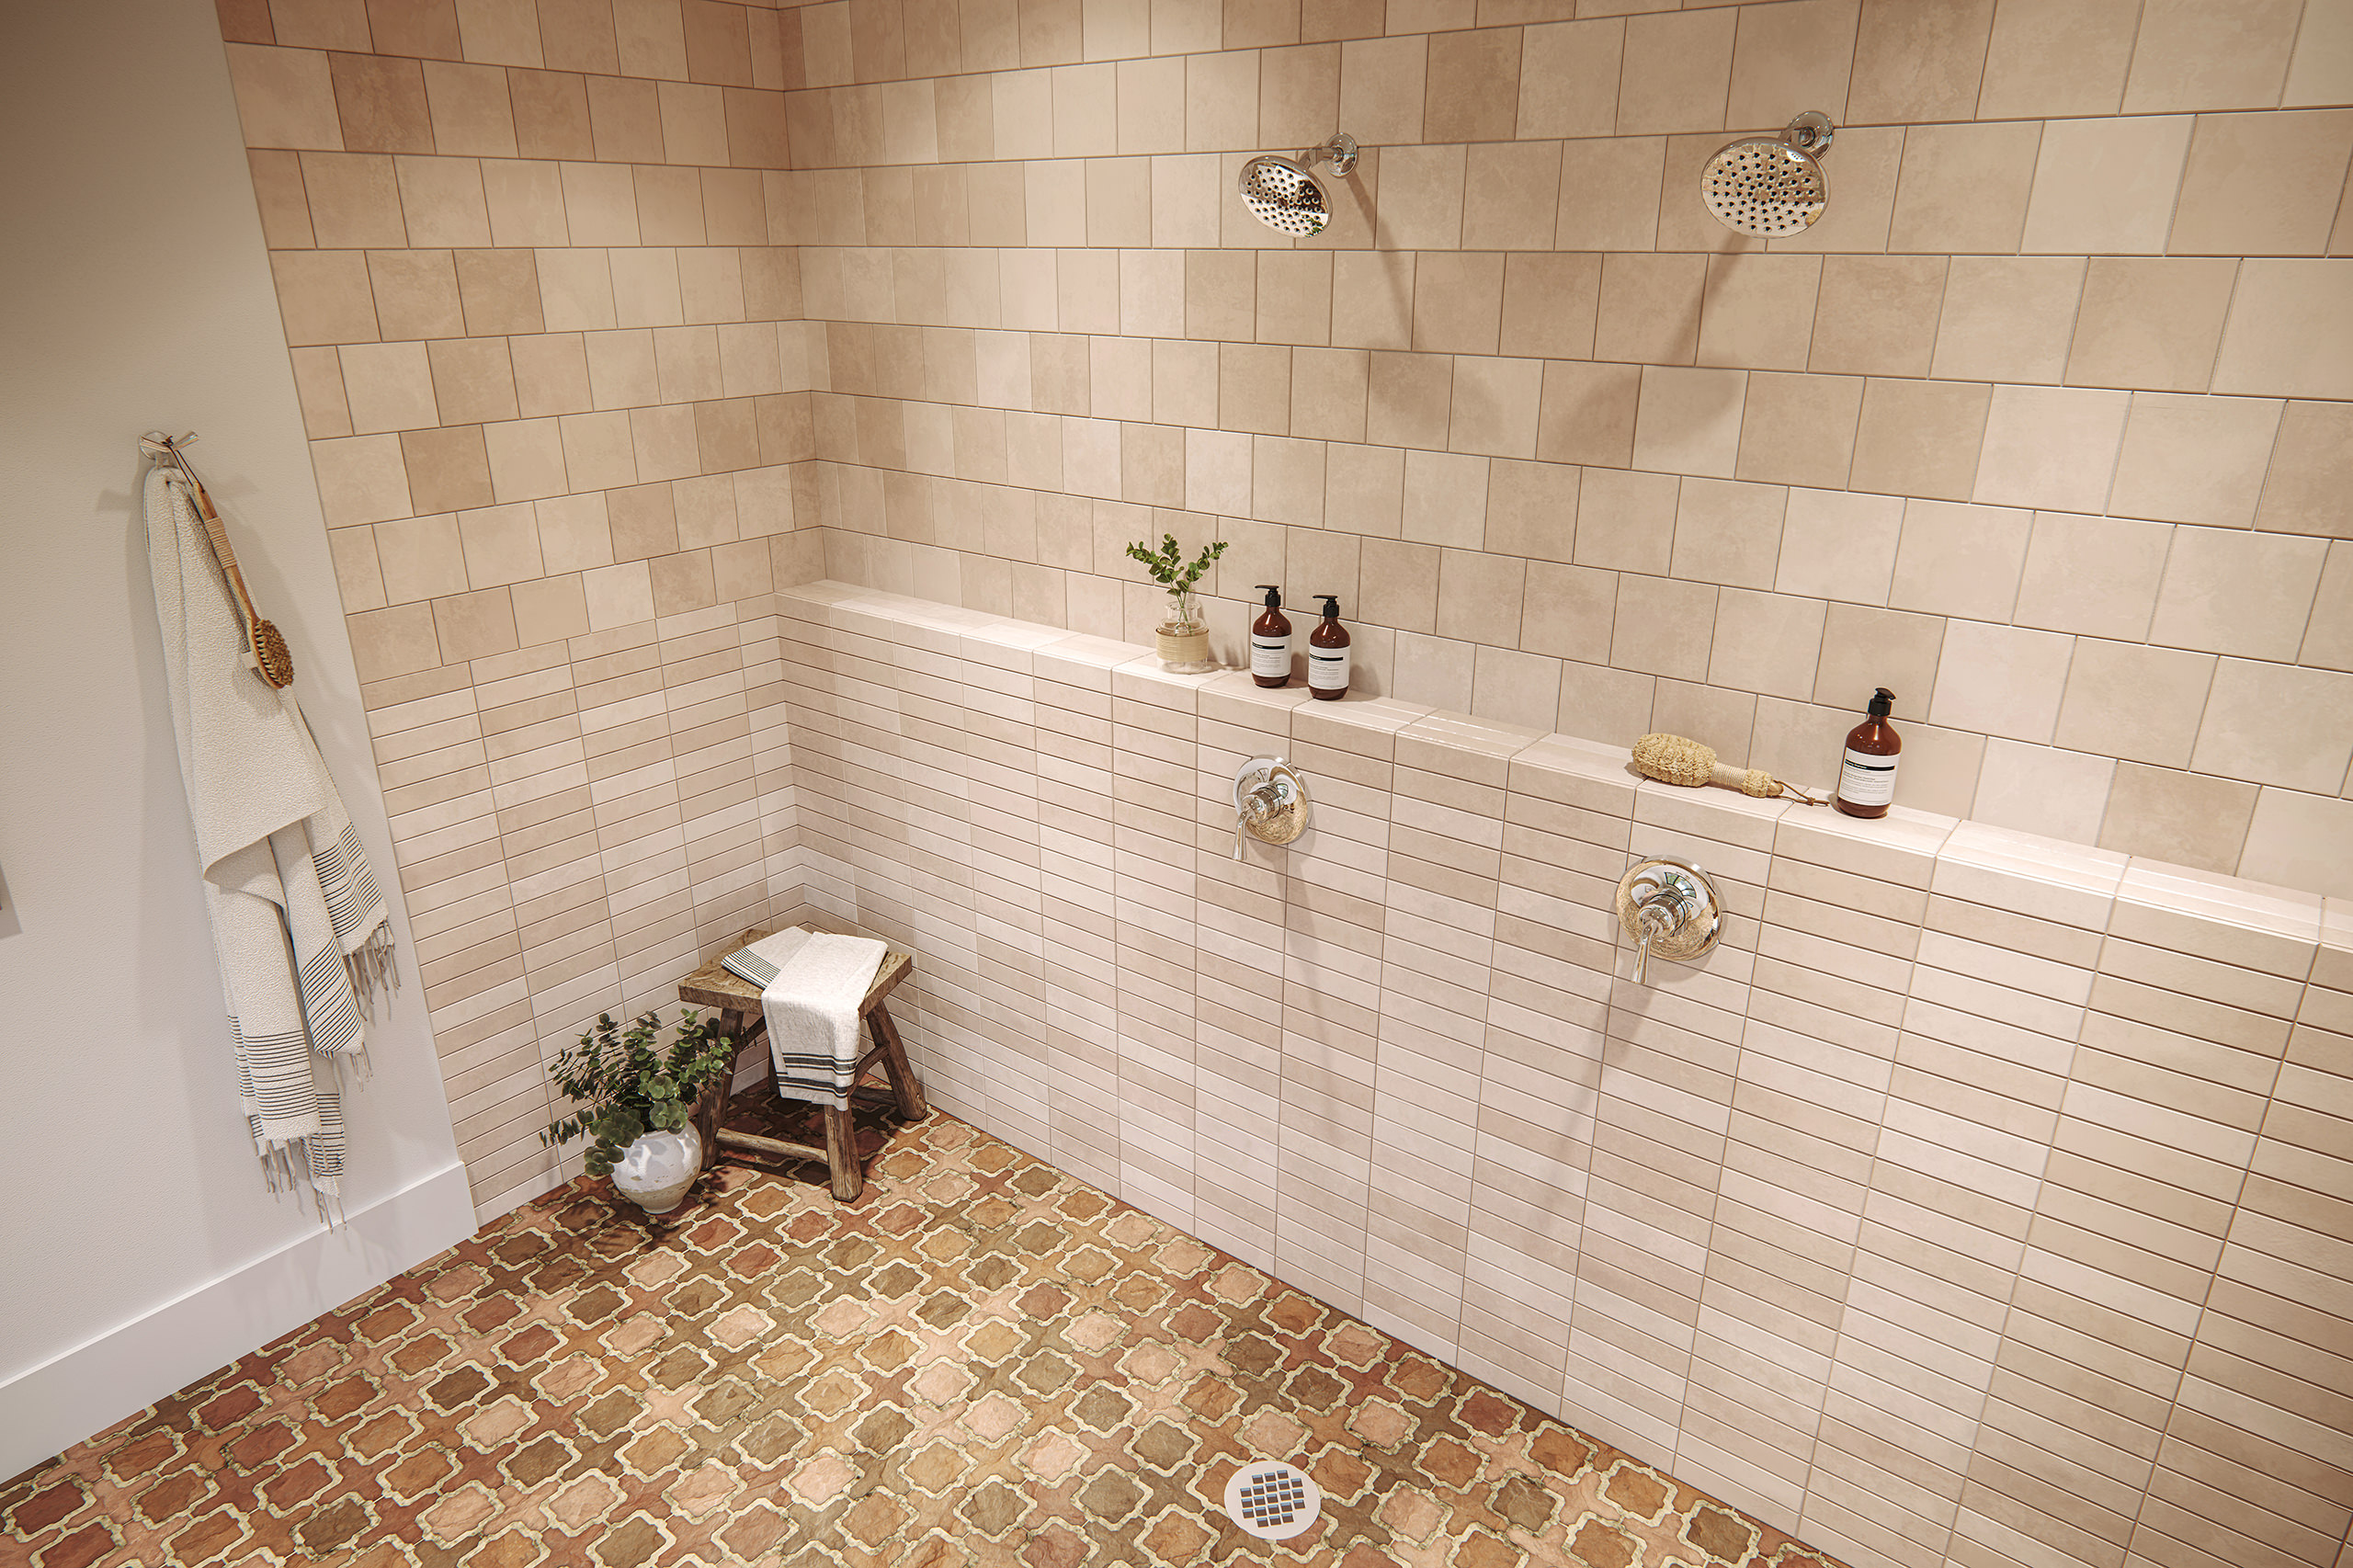 Interior visualization of a double shower with terra-cotta wall and floor tiles and organic bath accessories